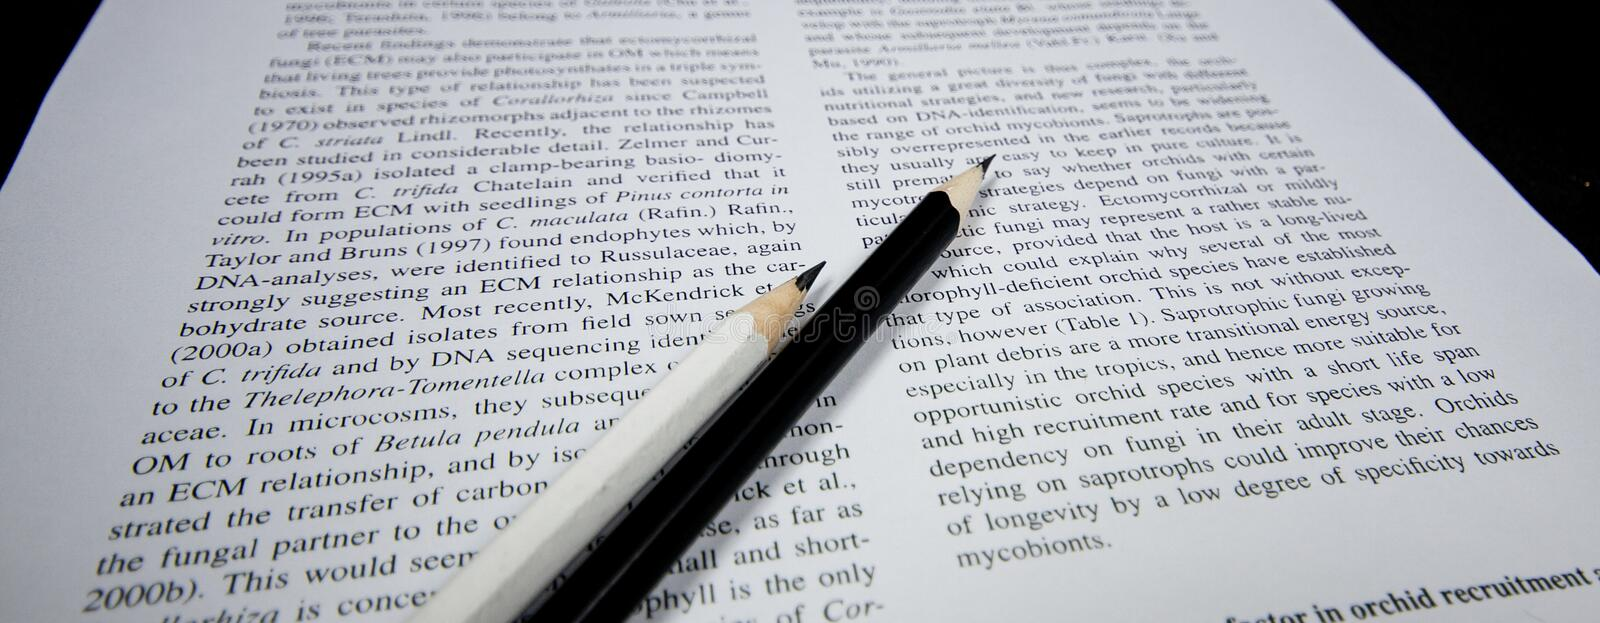 Black and white pencils on the texbook stock image